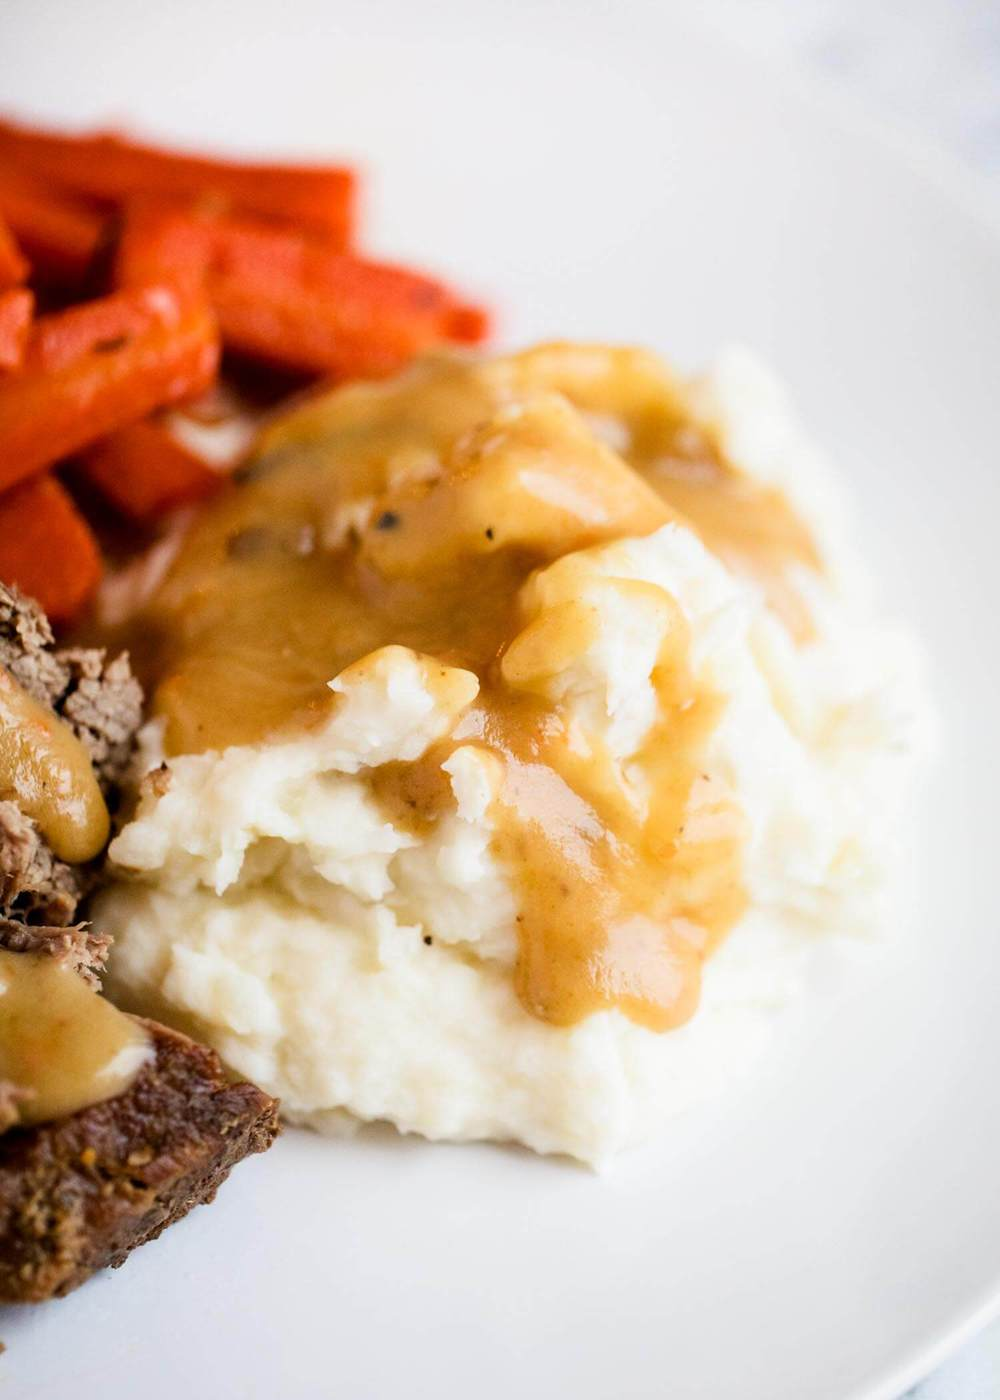 pot roast, carrots and mashed potatoes with gravy on top